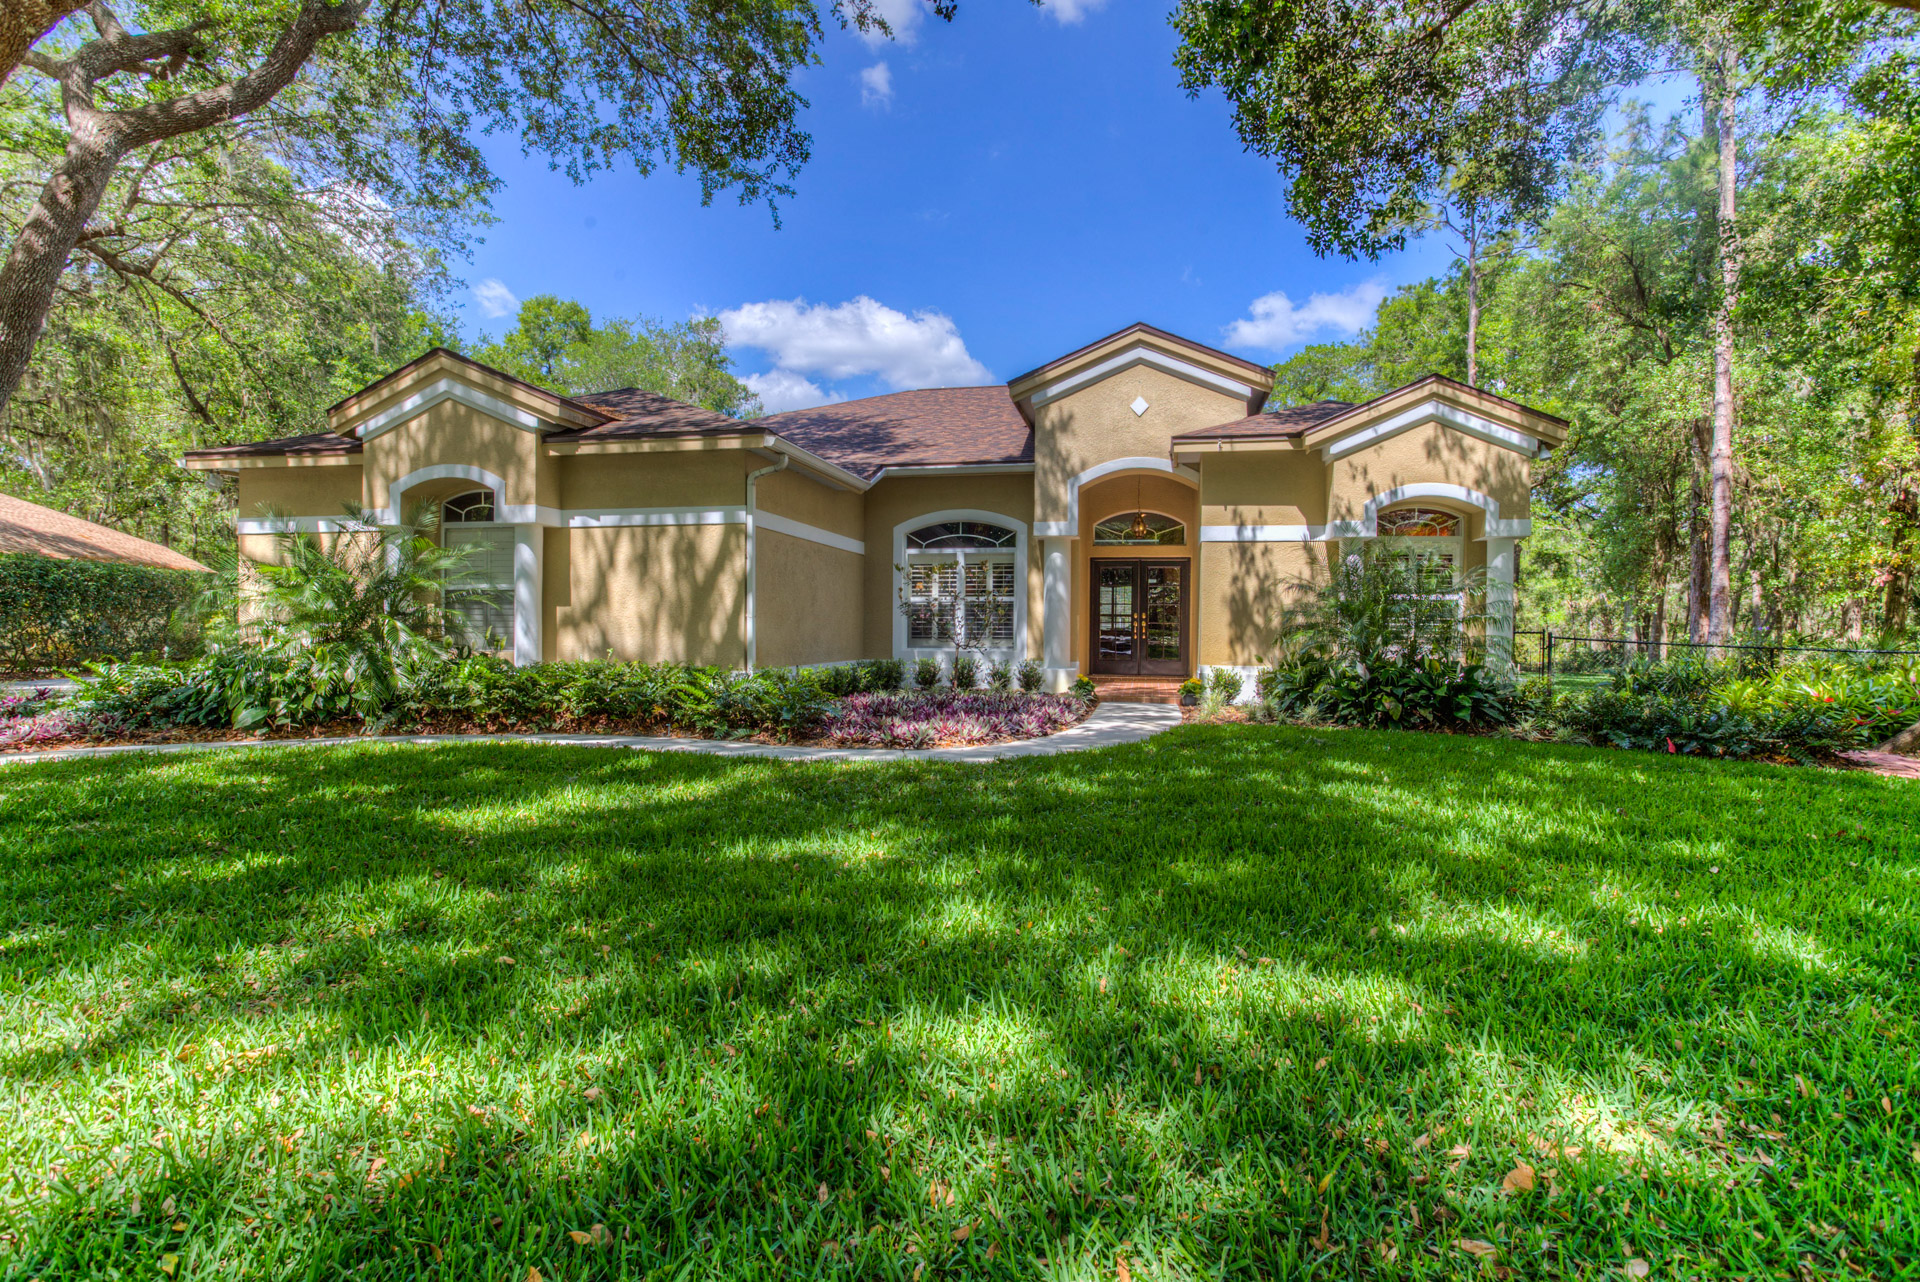 Homes For Sale In The Fishhawk Ranch Area